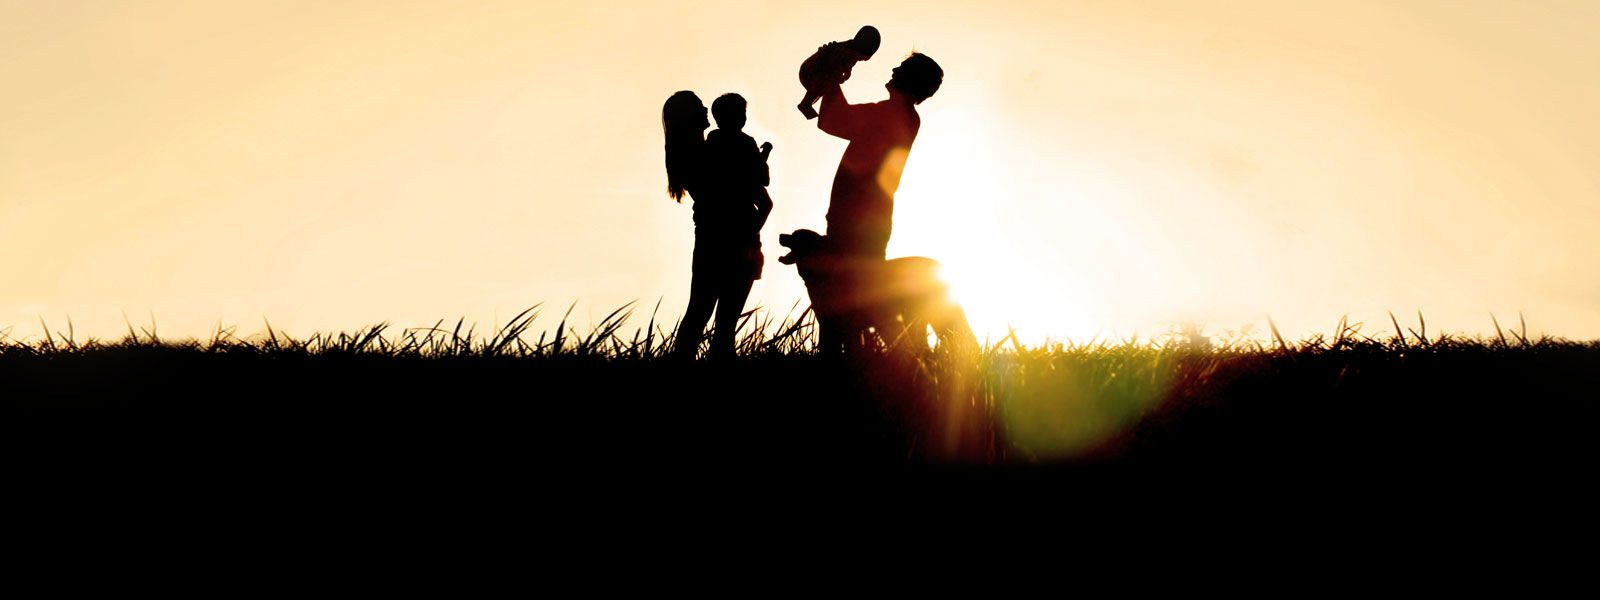 Silhouette of family in a field at sunrise.